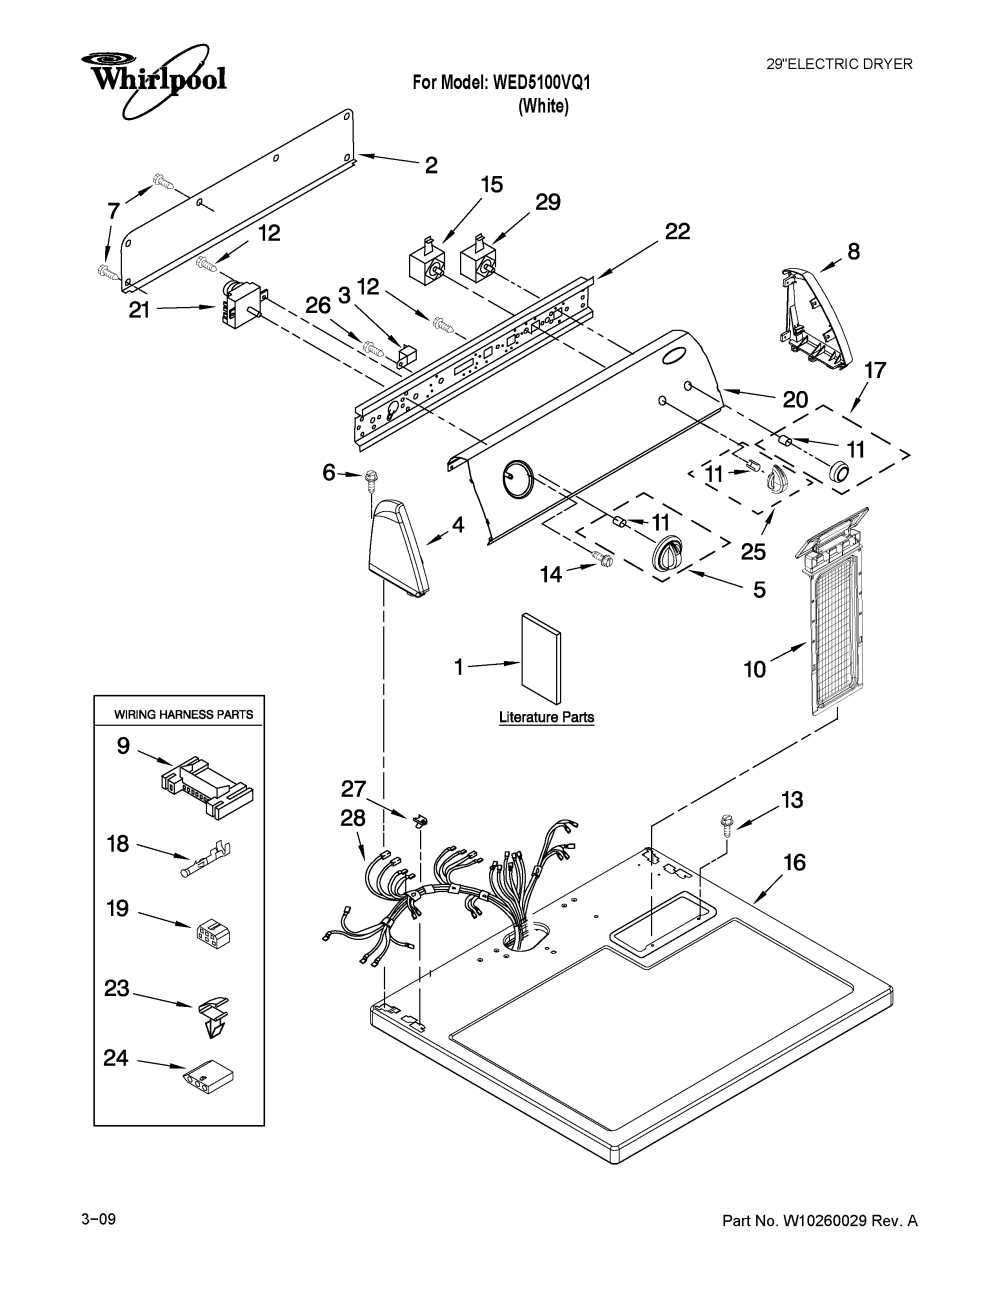 medium resolution of whirlpool wed5100vq1 top and console parts diagram